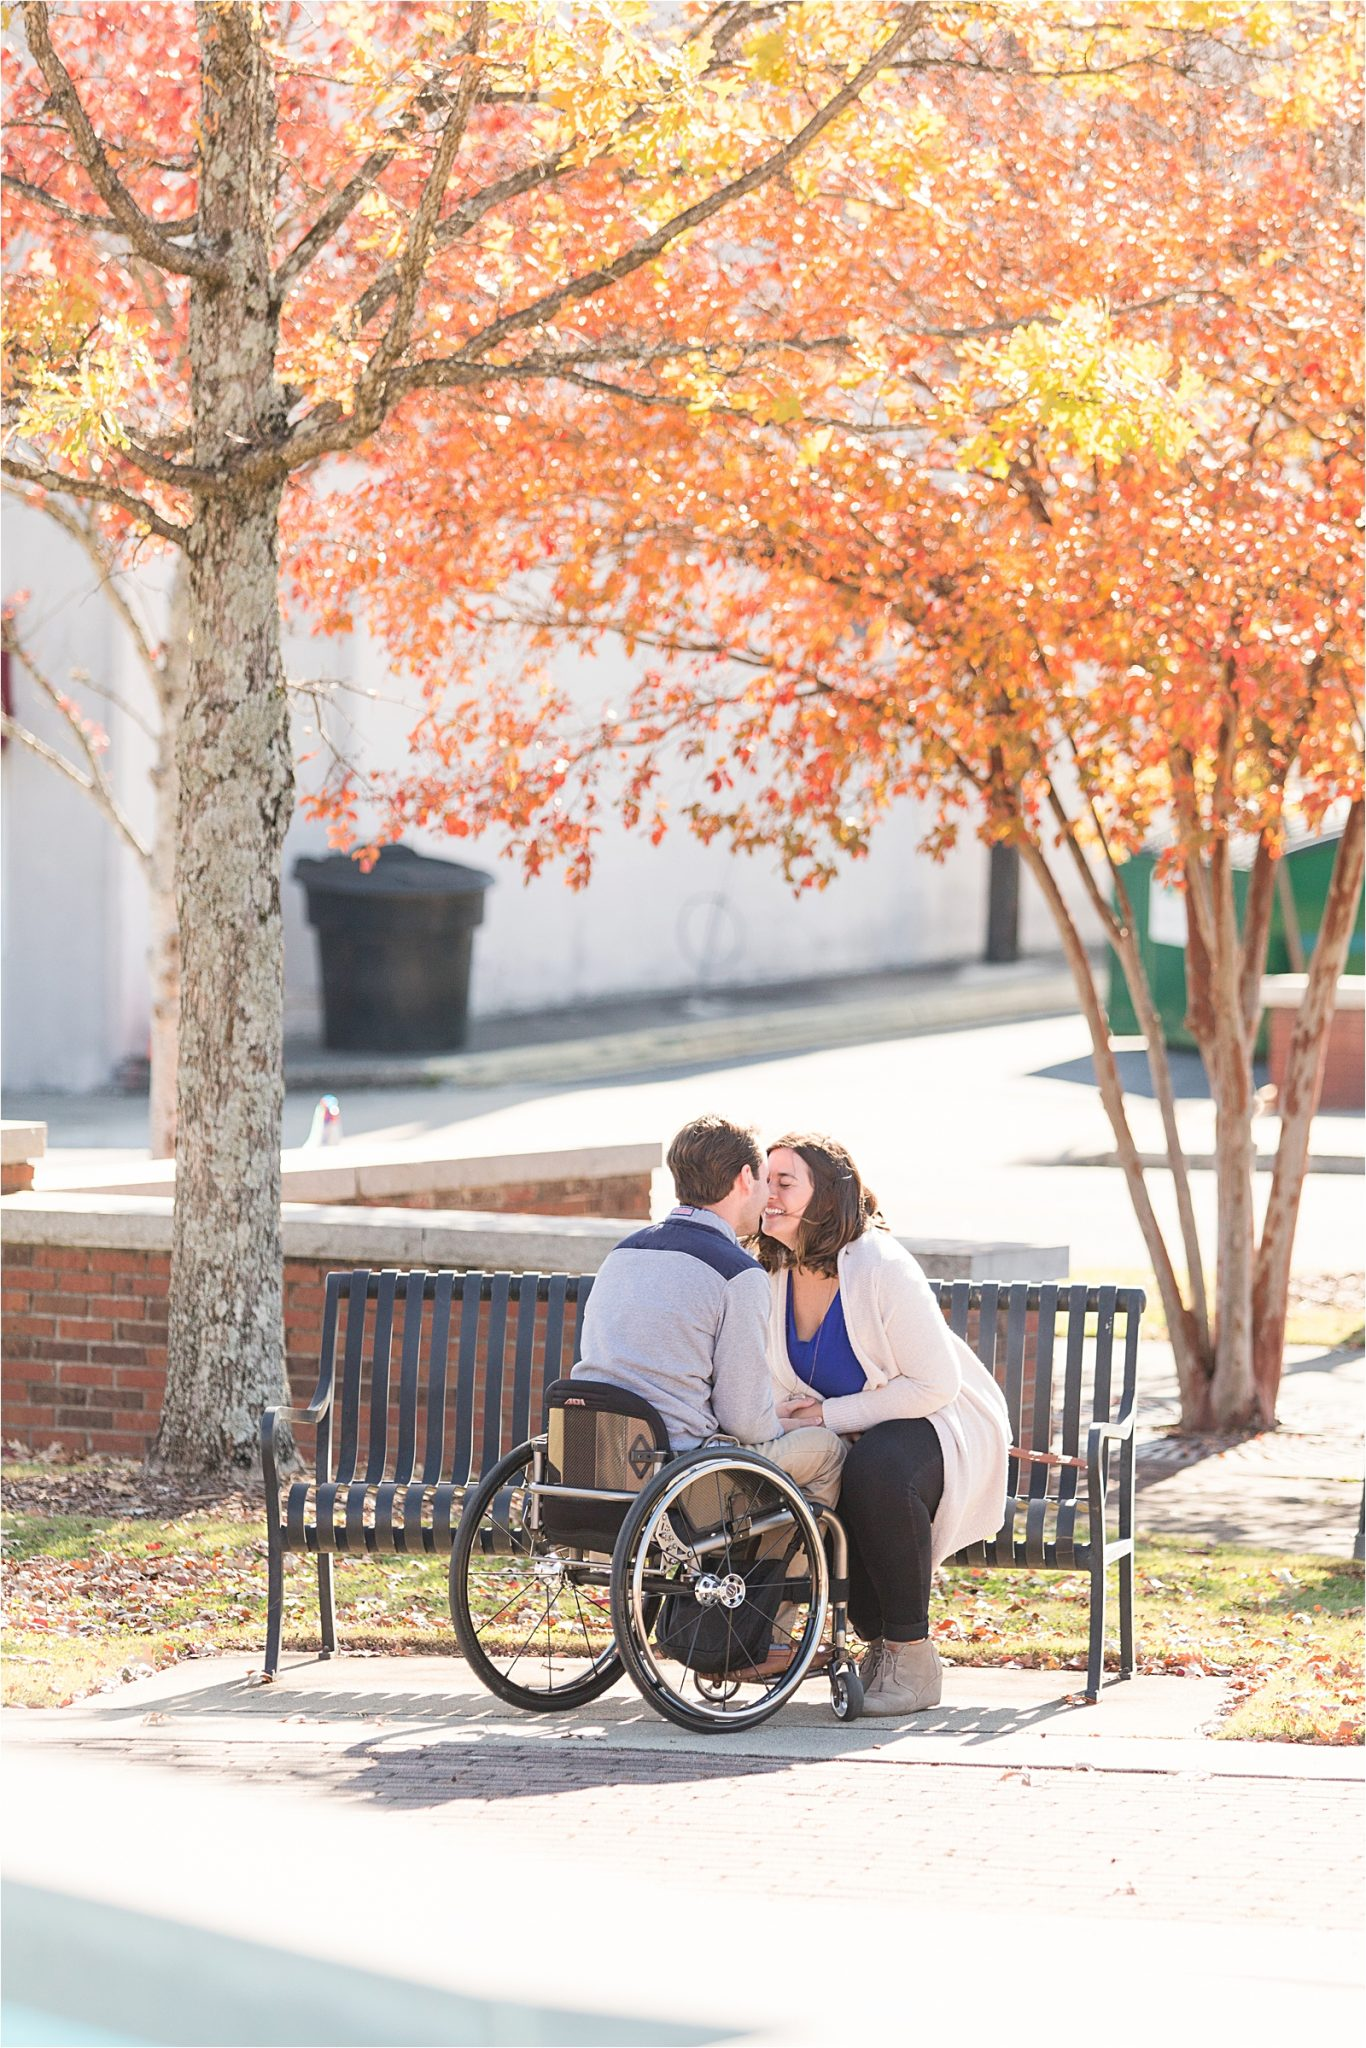 Auburn Alabama Engagement Photographer-Richard's Proposal to Debby-Fall proposal-Fall engagement-Autumn engagement